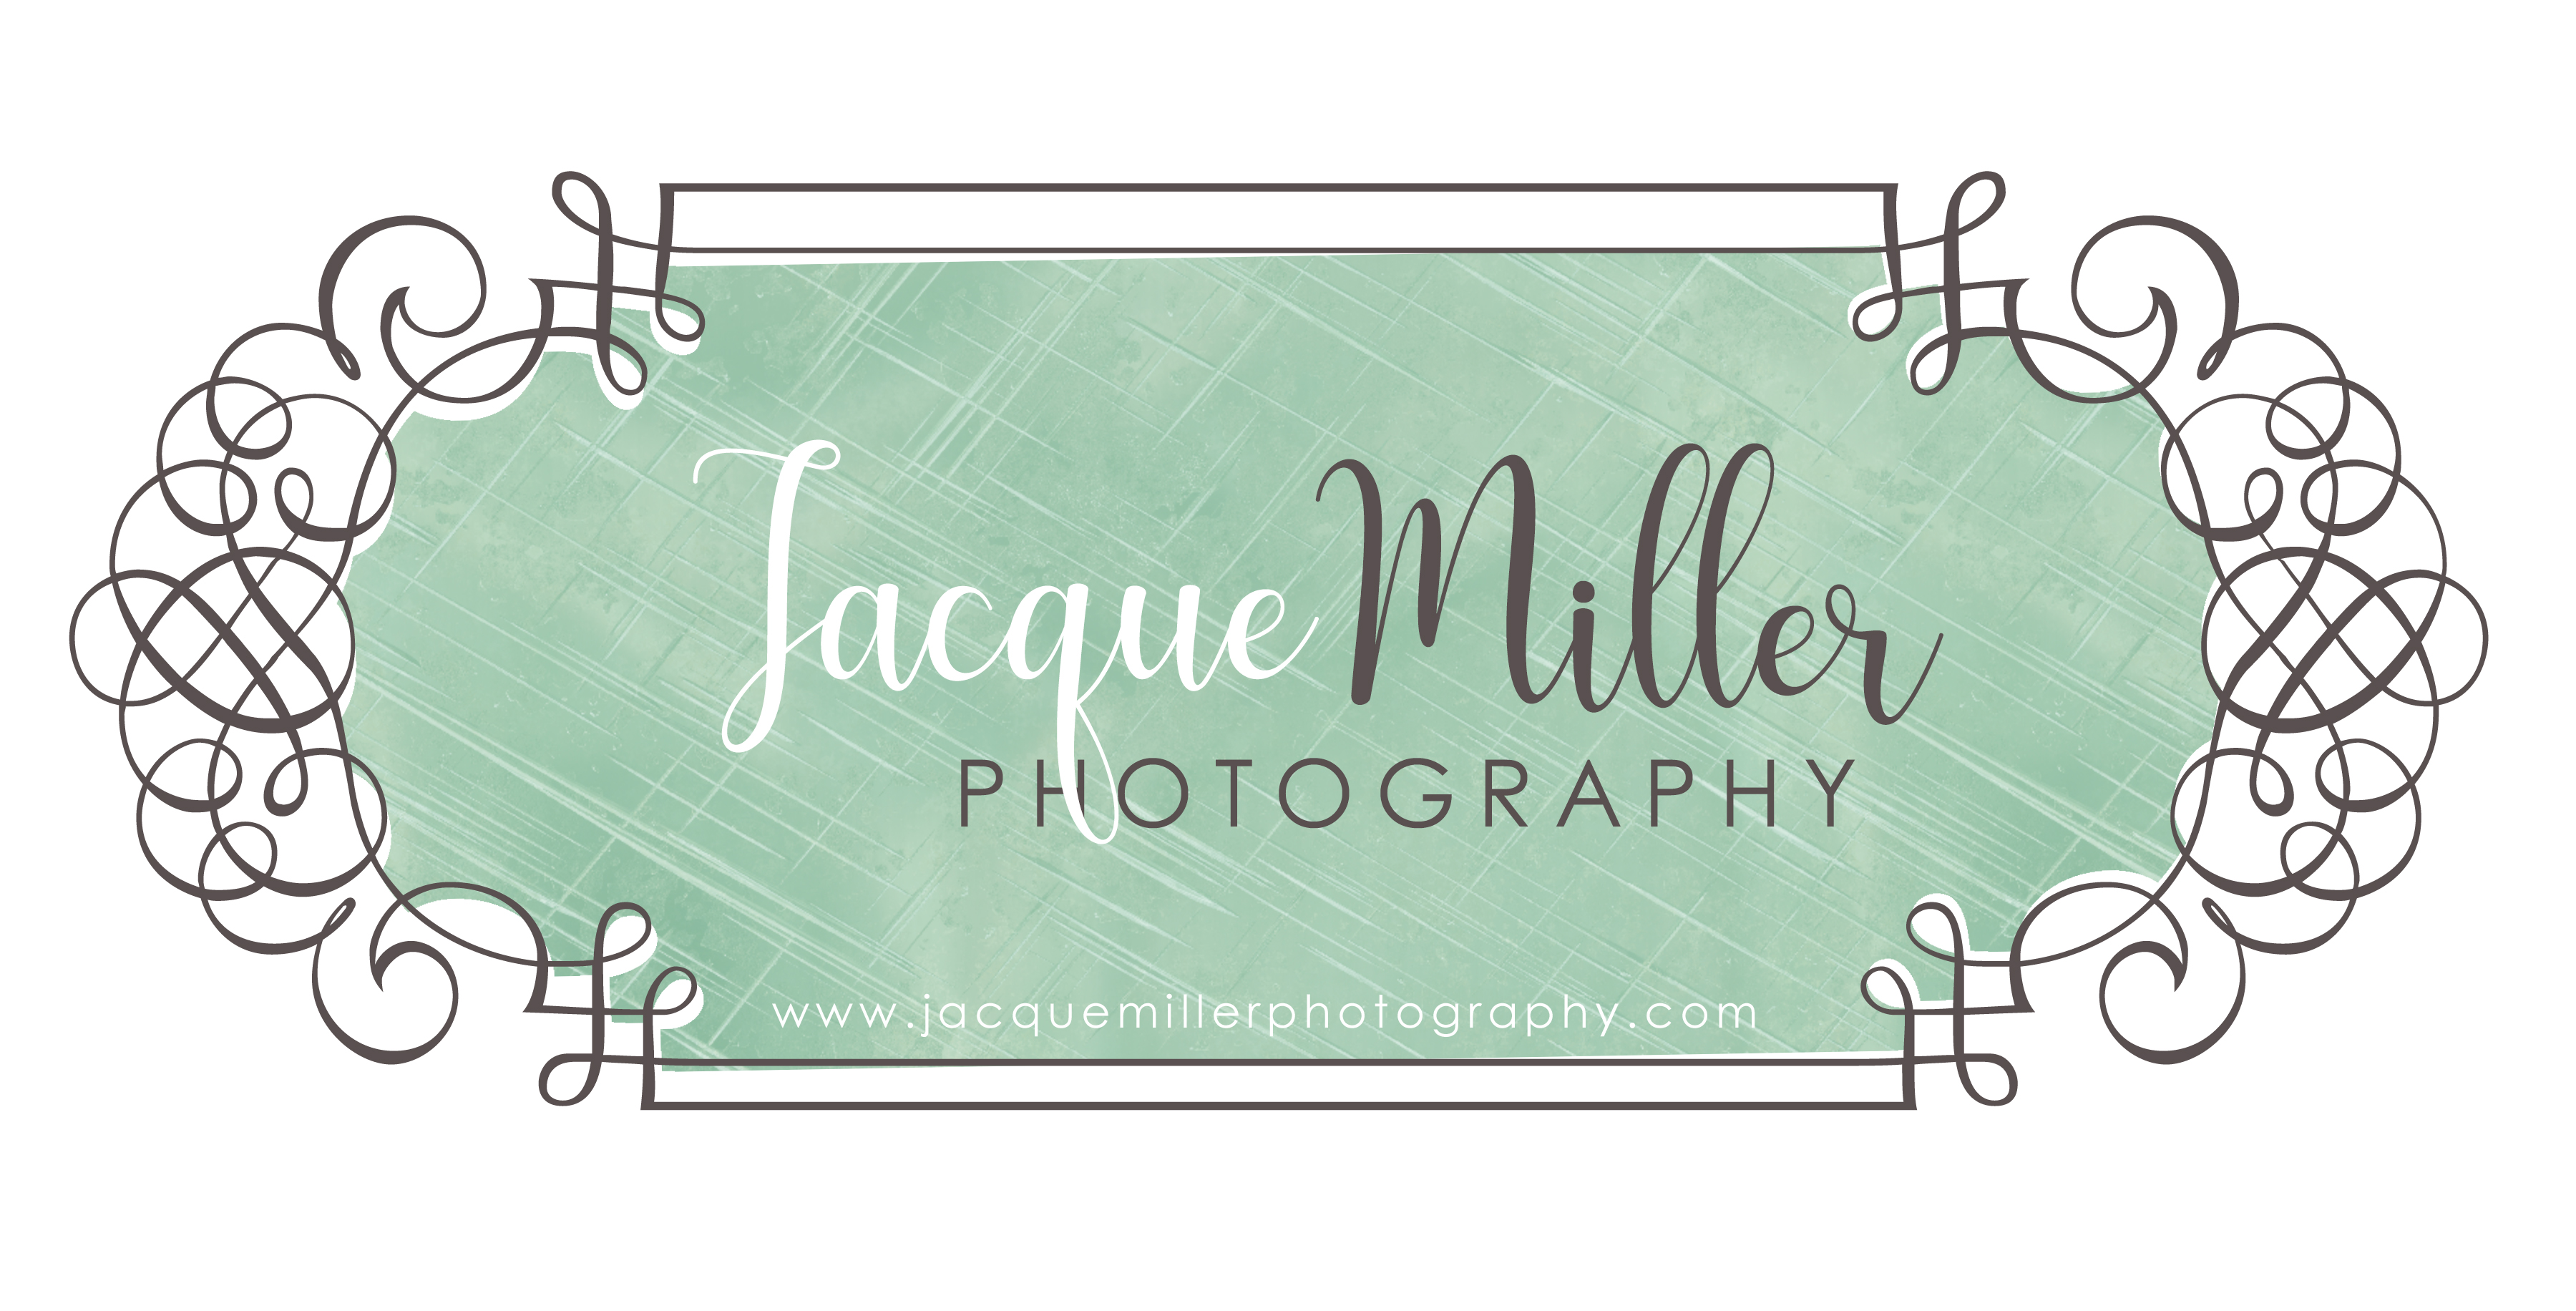 Jacque Miller Photography